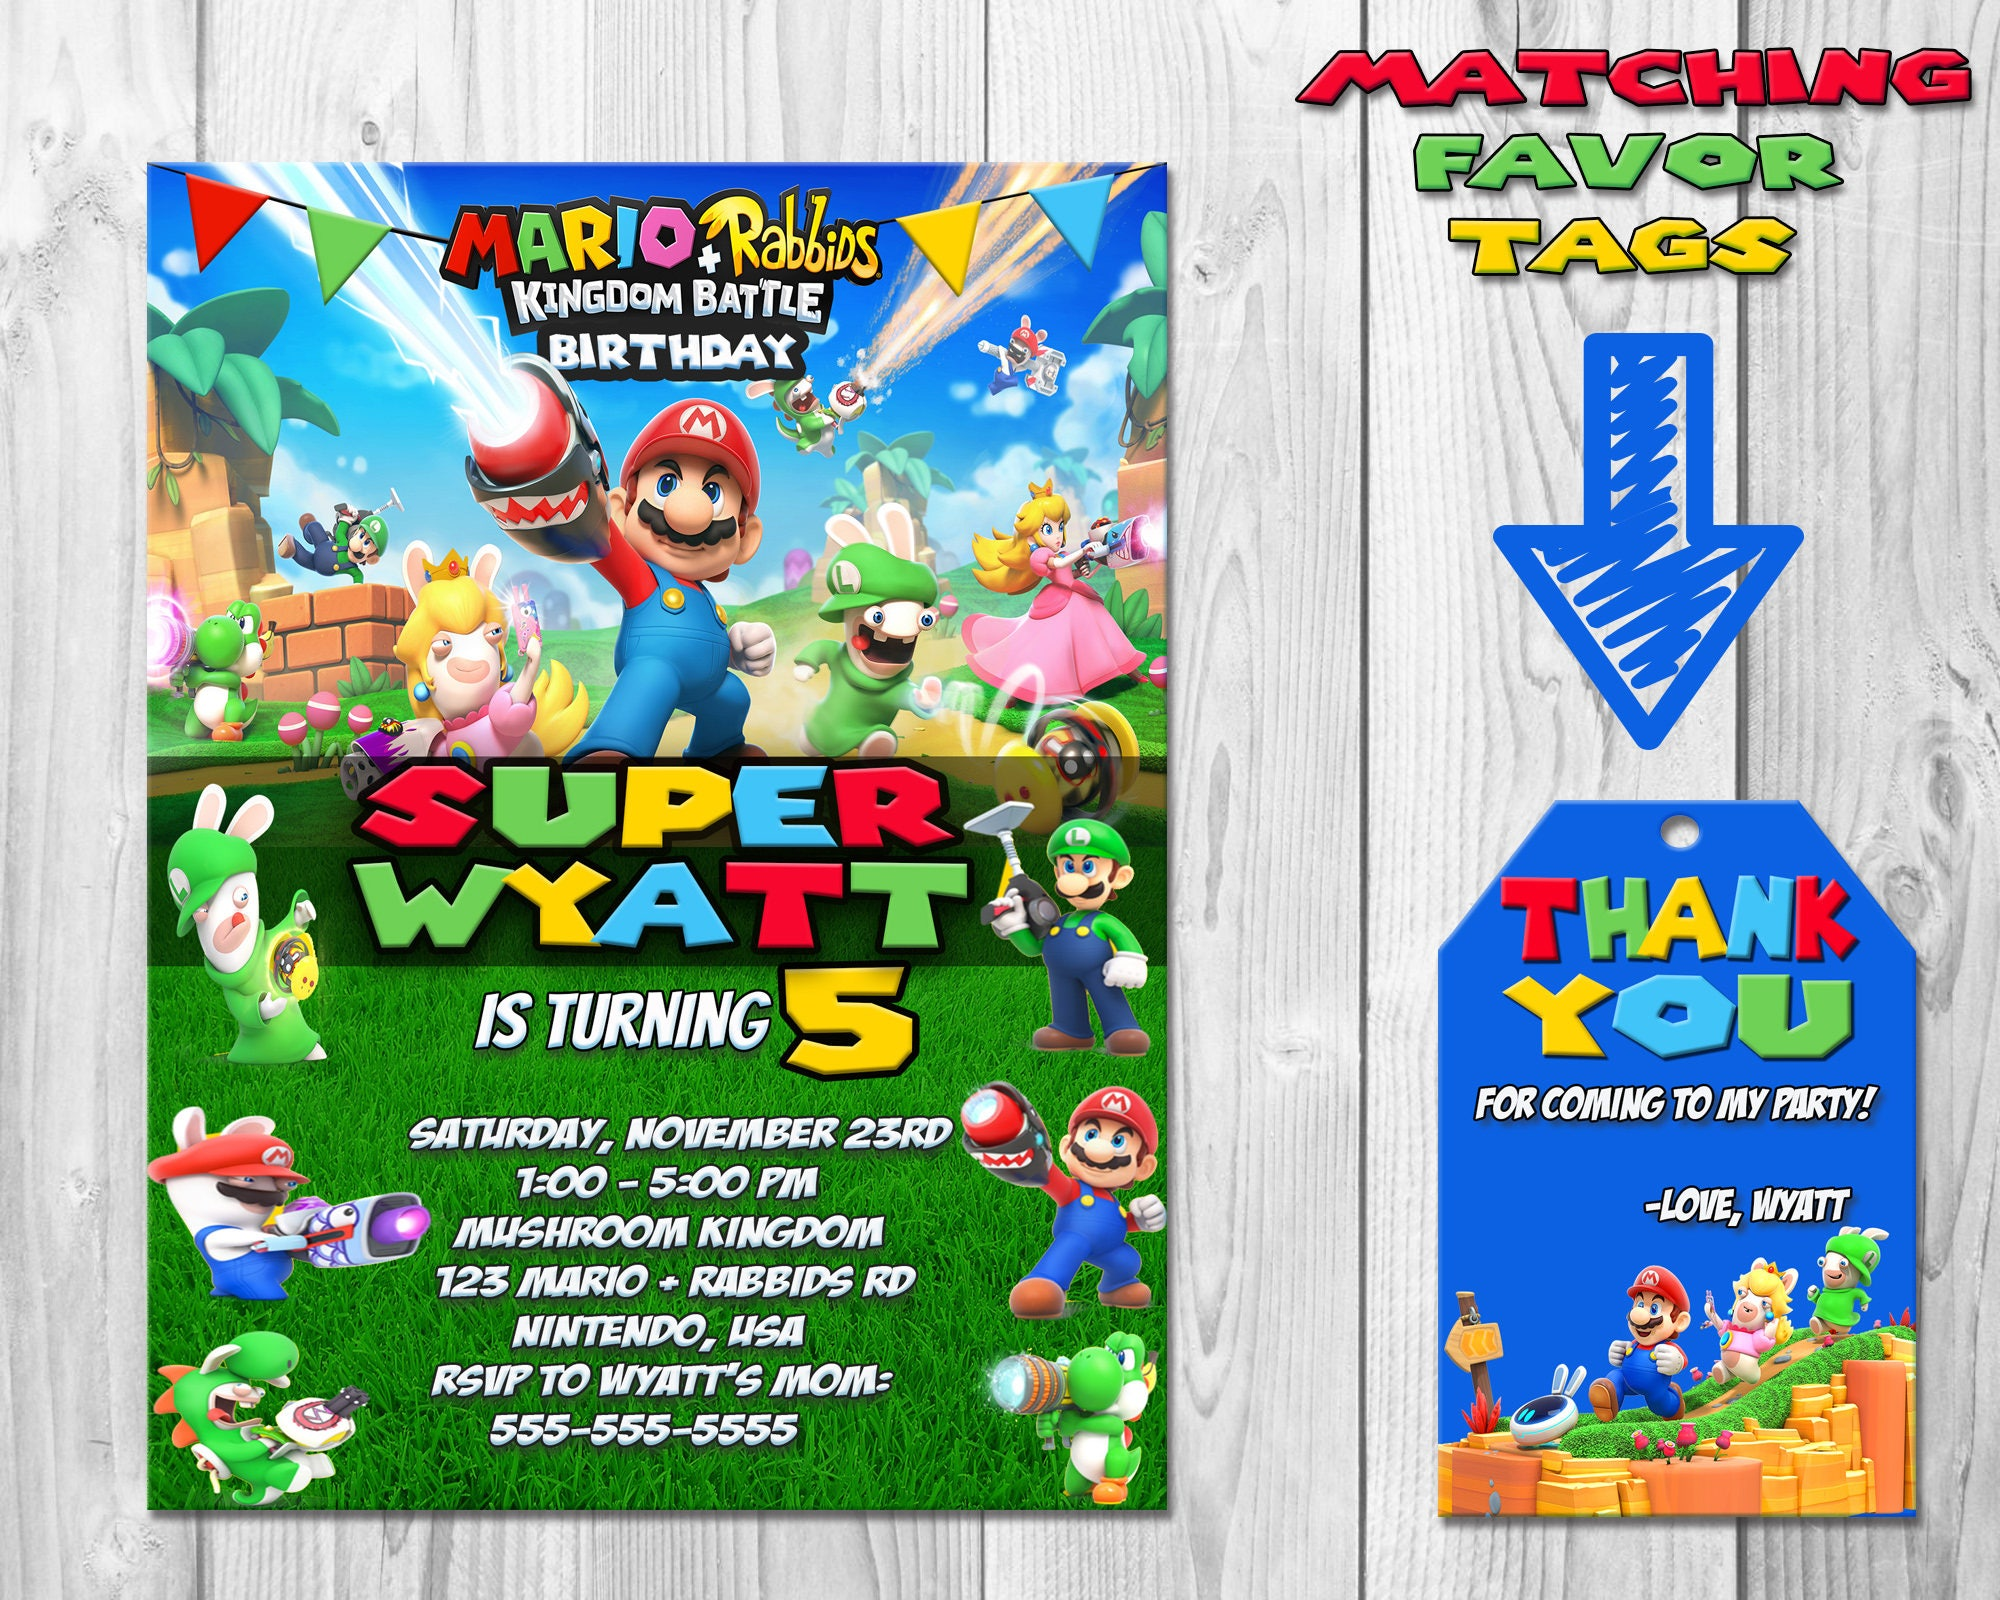 Mario rabbids kingdom battle birthday party invitations description mario rabbids kingdom battle bithrday party invitations monicamarmolfo Gallery